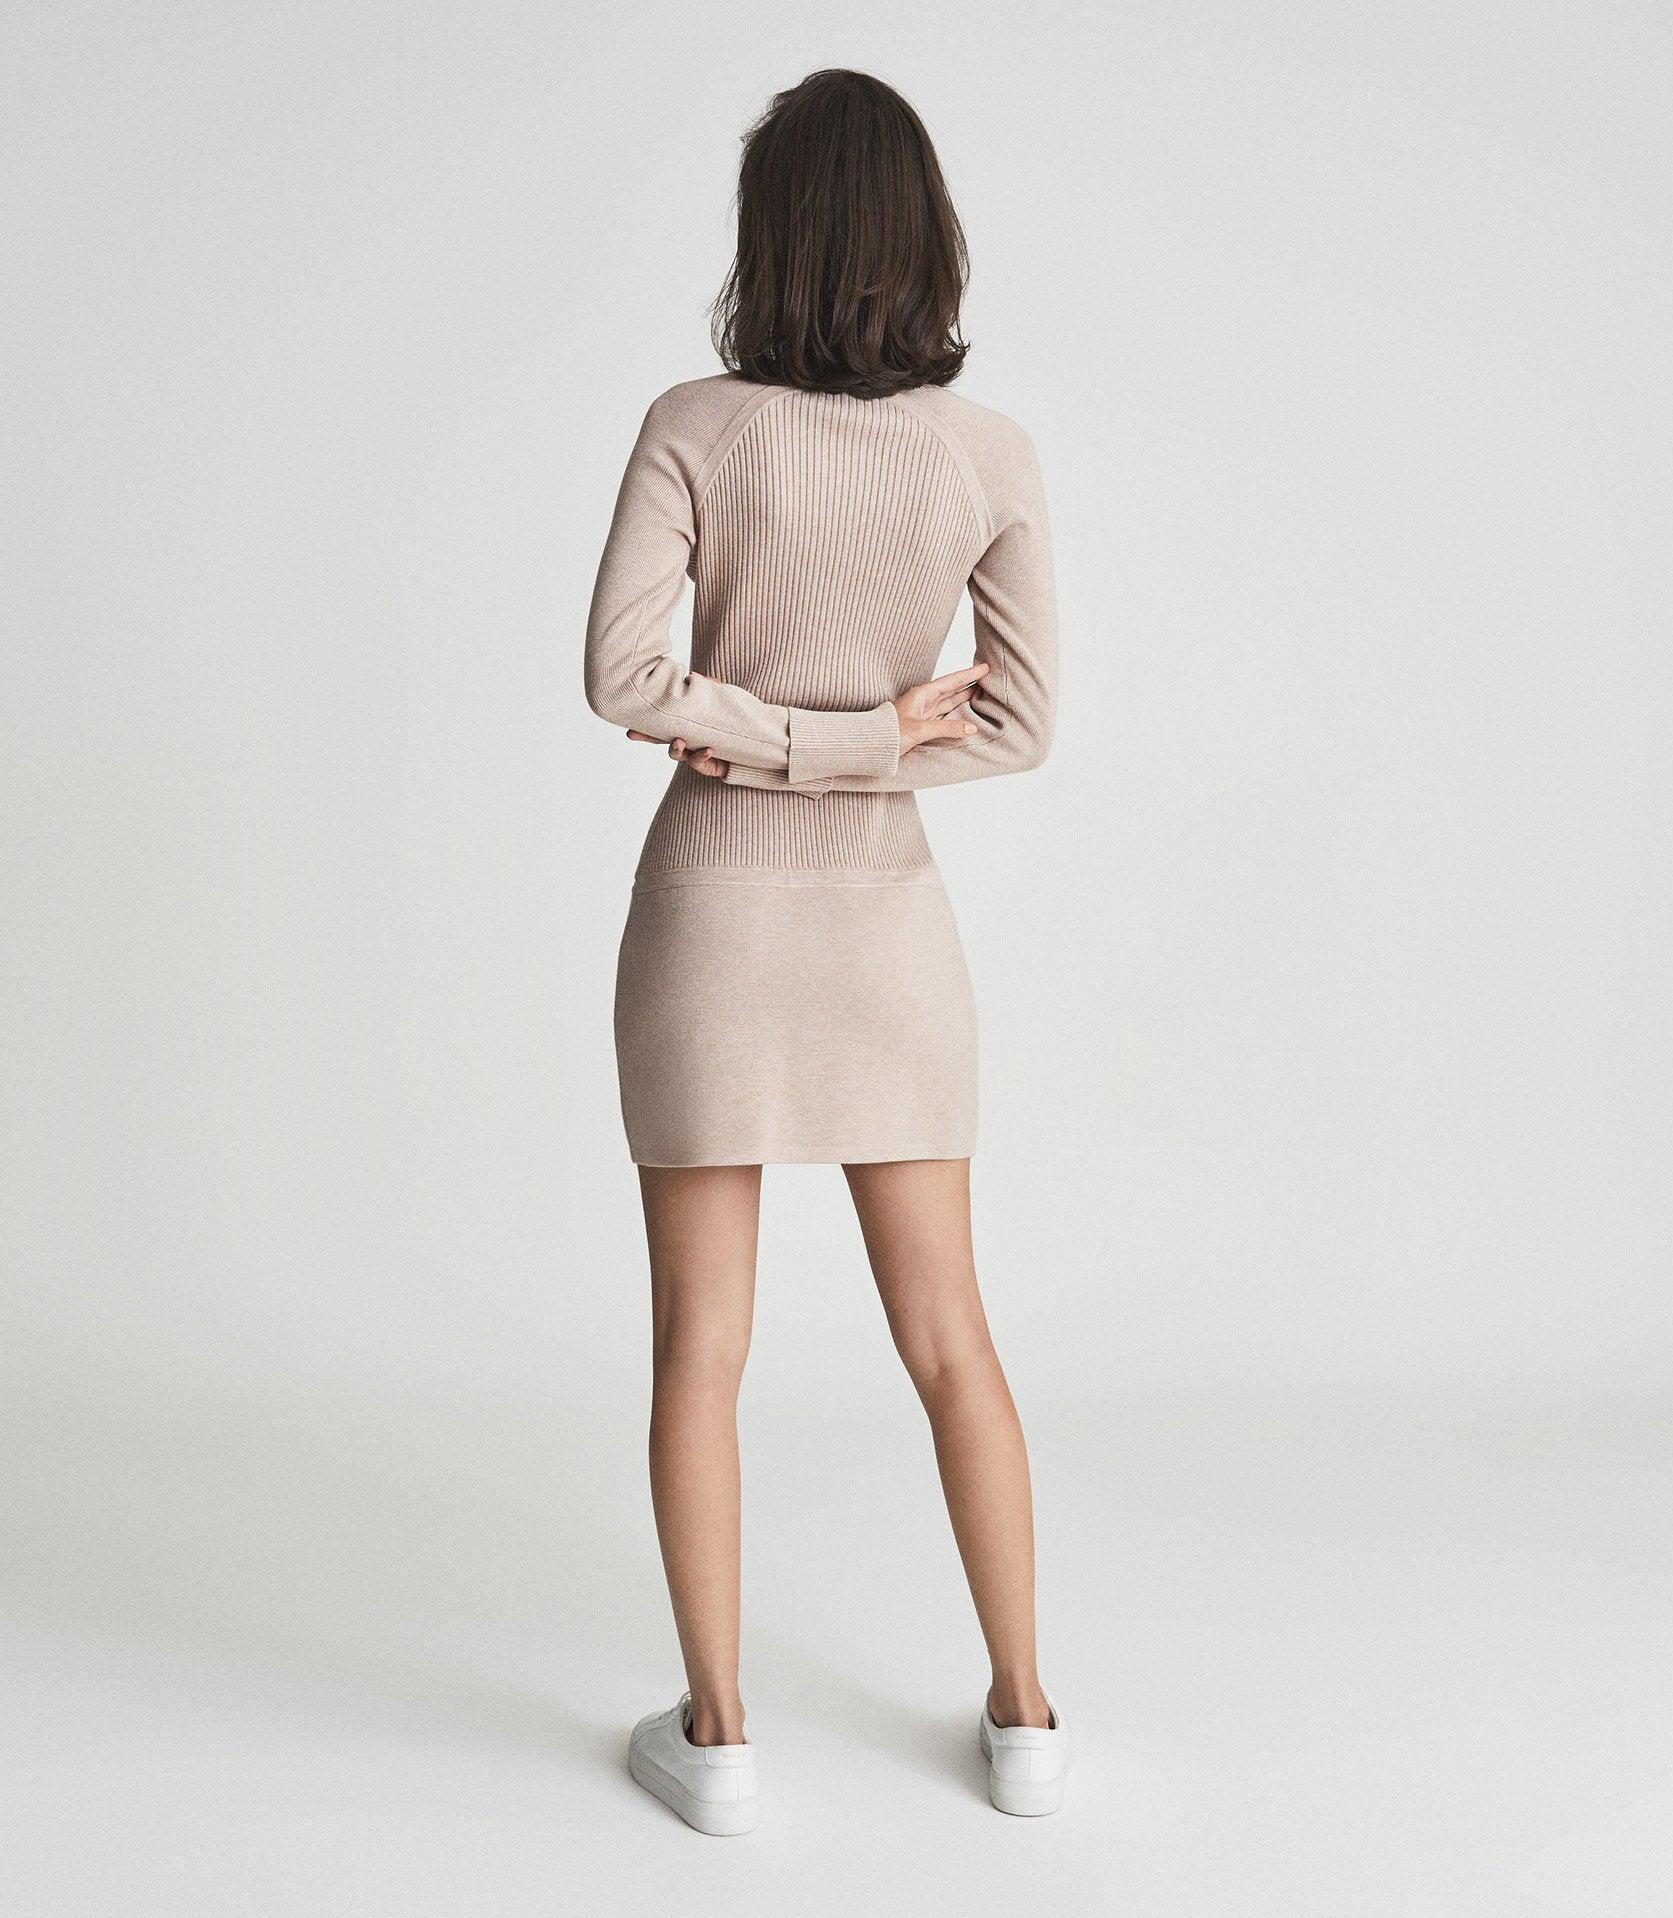 ASHLEIGH - KNITTED BODYCON DRESS WITH ZIP DETAIL 3